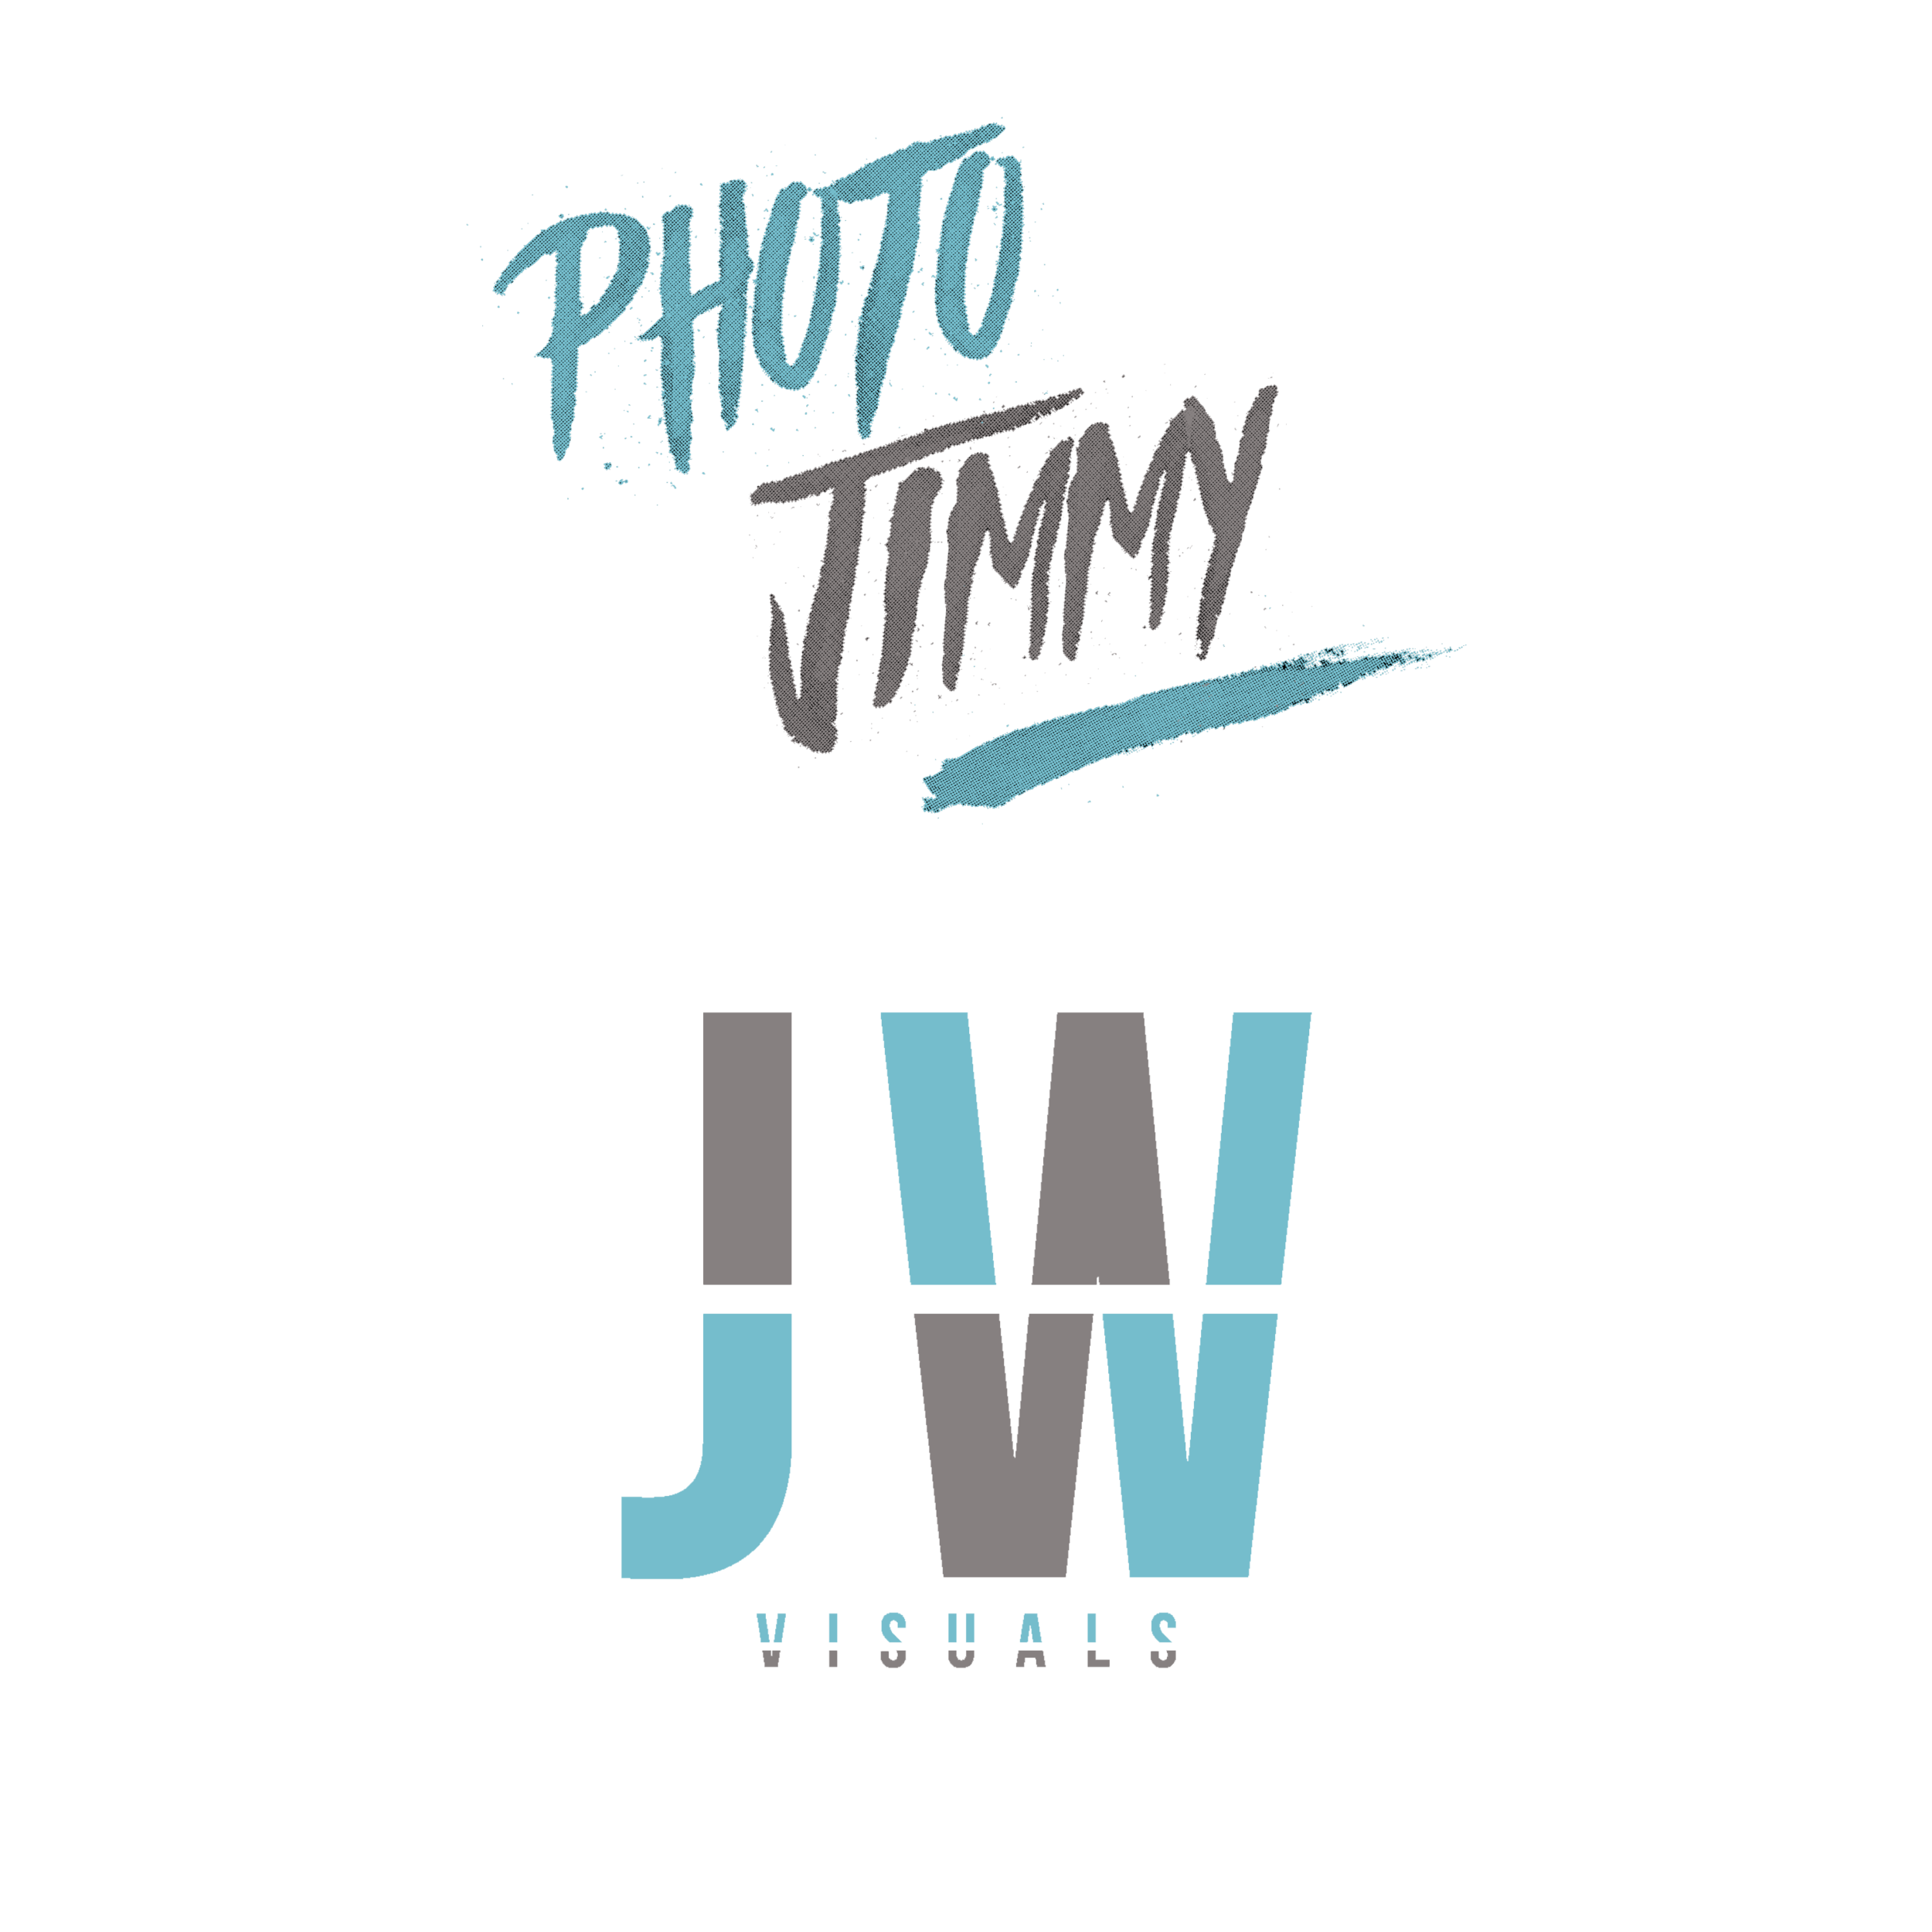 photojimmy / JW Visuals